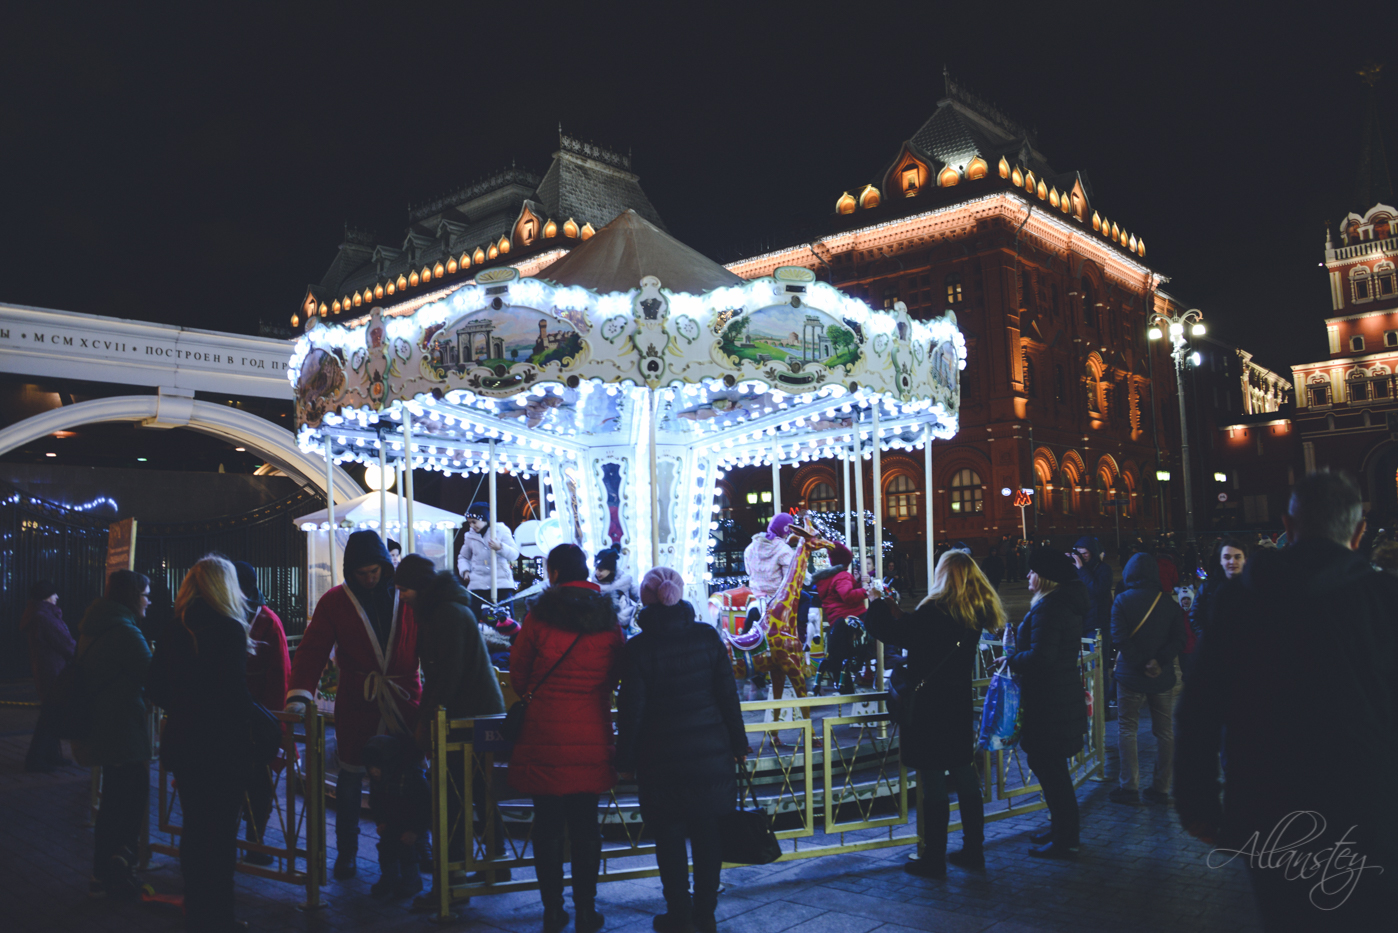 Christmas merry-go-round in Moscow, Russia. Winter holidays celebrations, Christmas roundabout, carousel